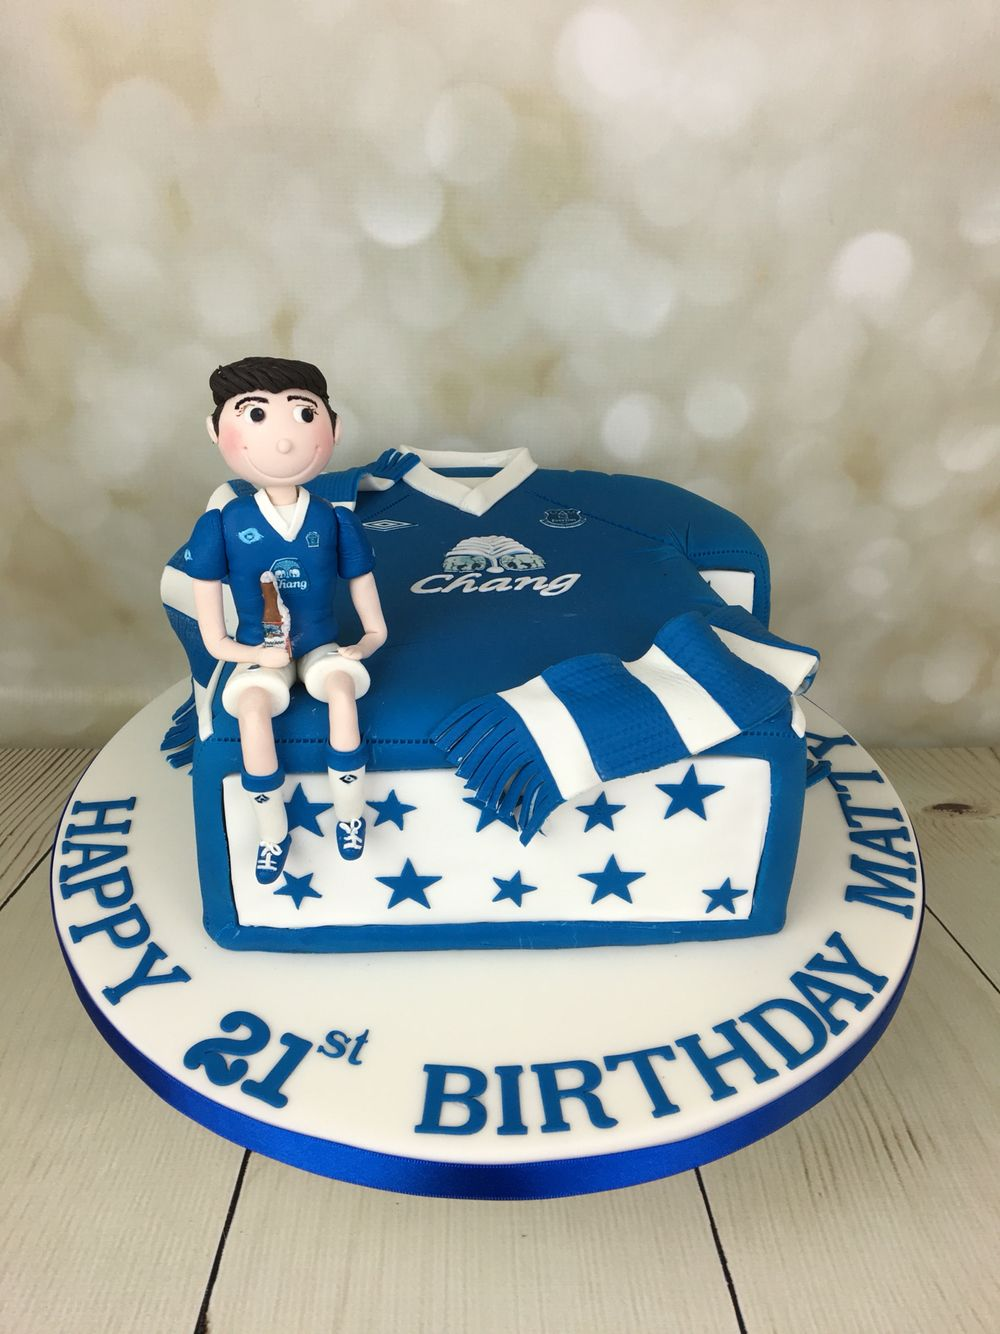 Everton FC football shirt cake with figure of the birthday boy in an